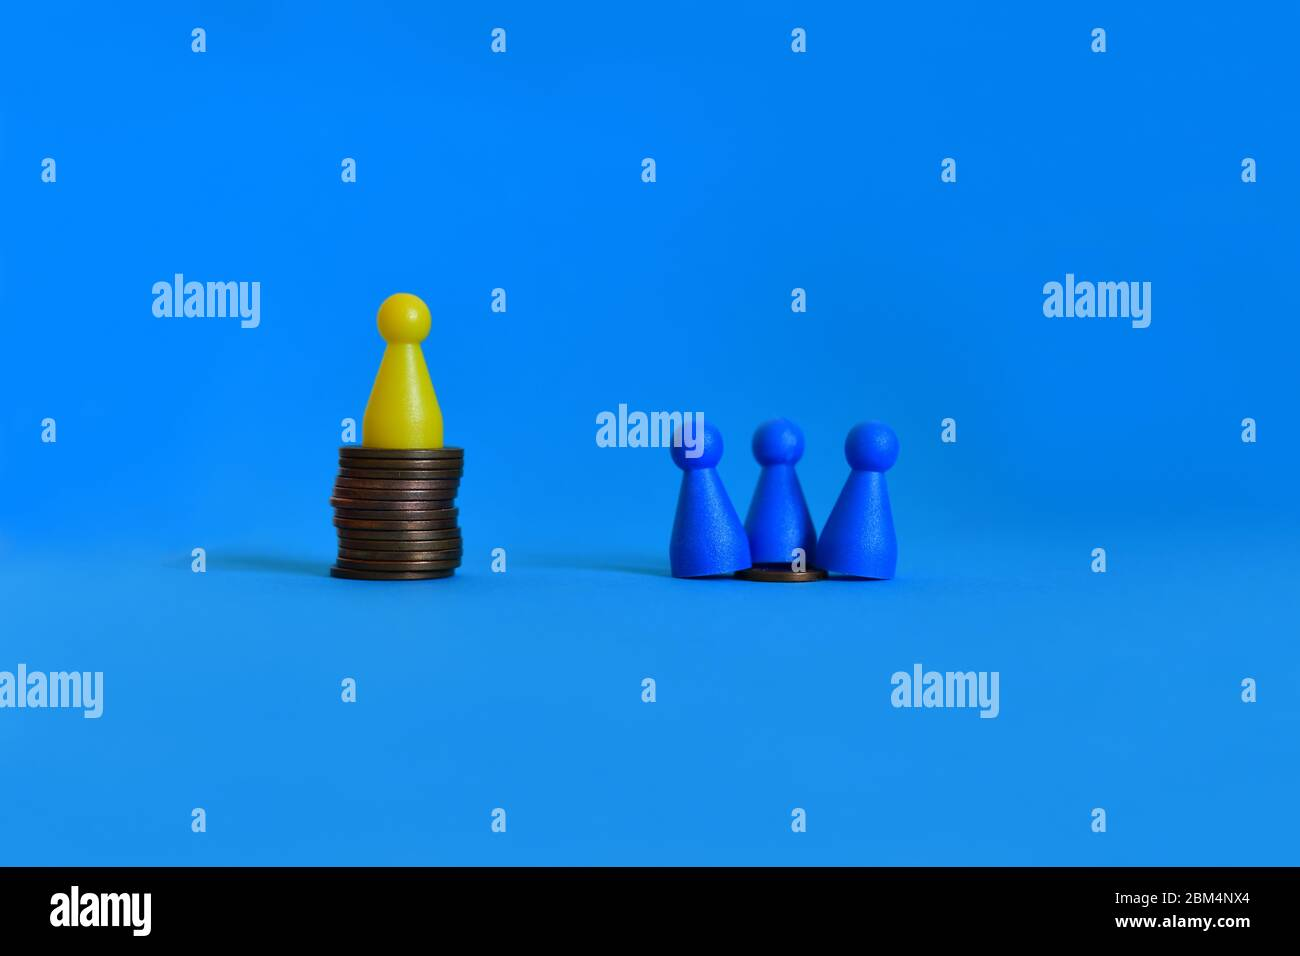 Pawns standing on piles of different sizes of coins. Income and economic inequality concept. Stock Photo